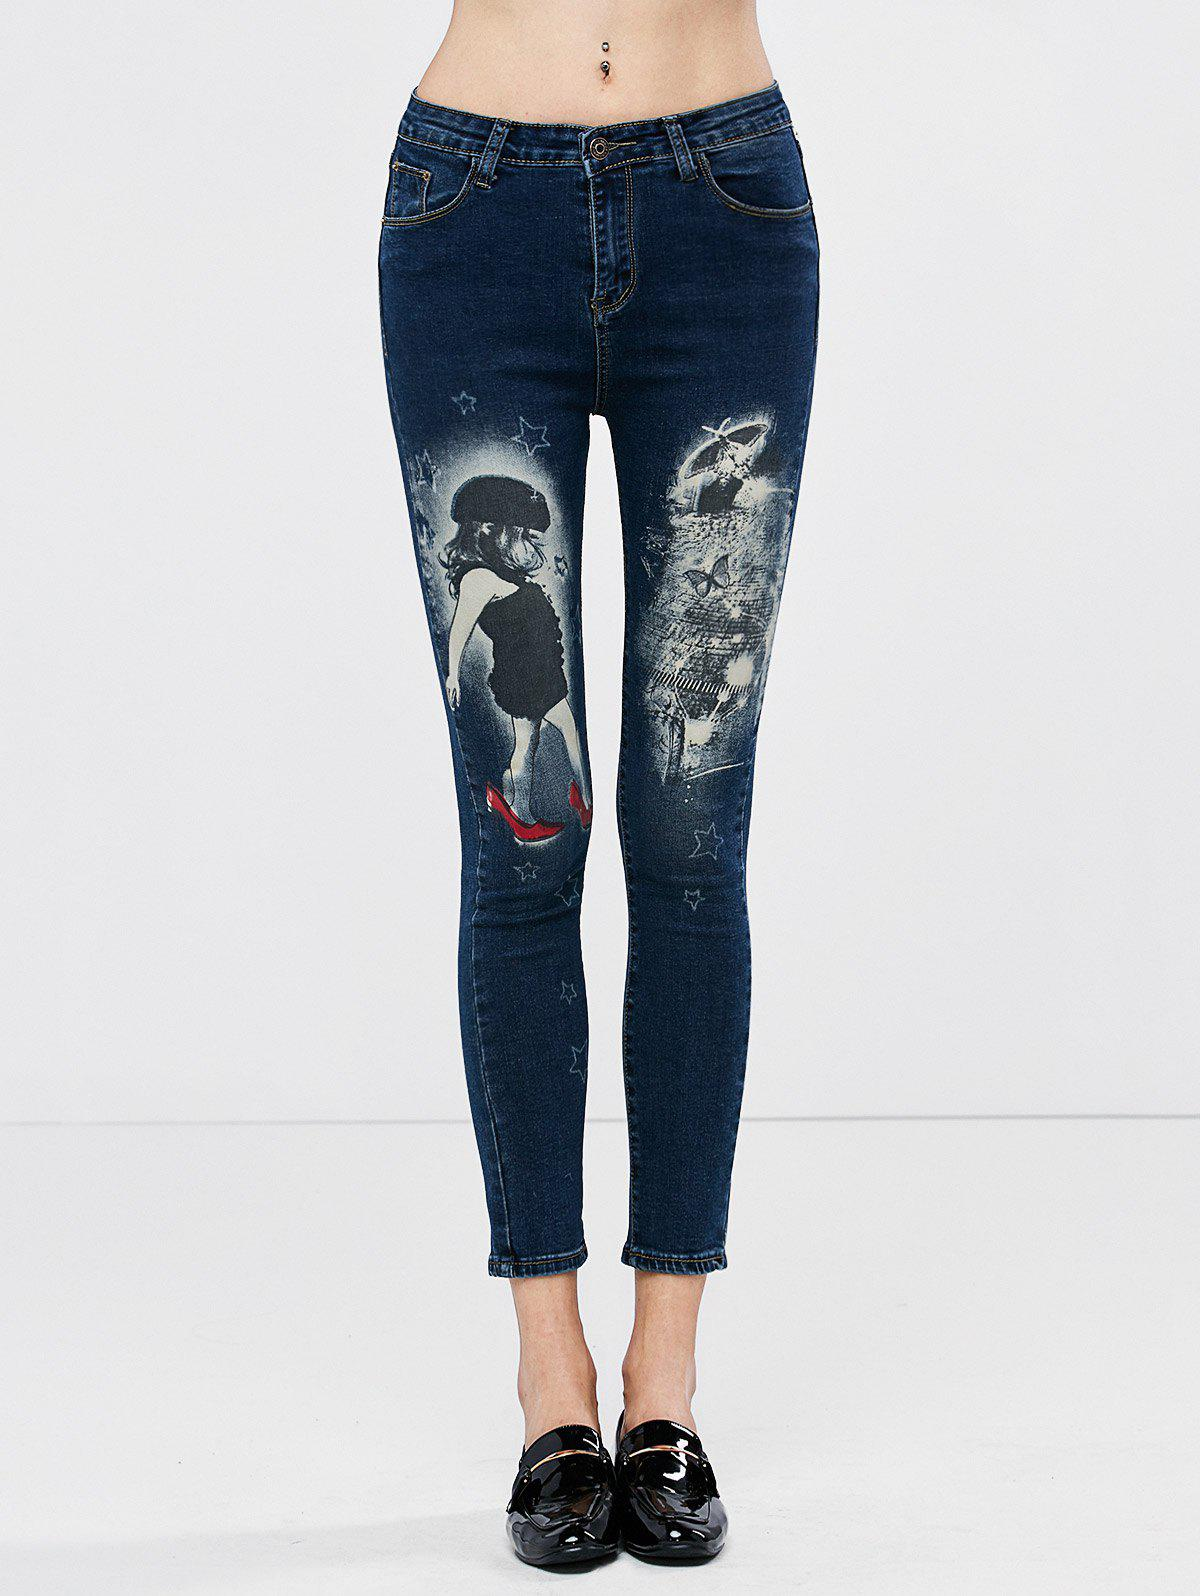 Low Waisted Girl Printed Cropped Skinny Jeans - DEEP BLUE 27